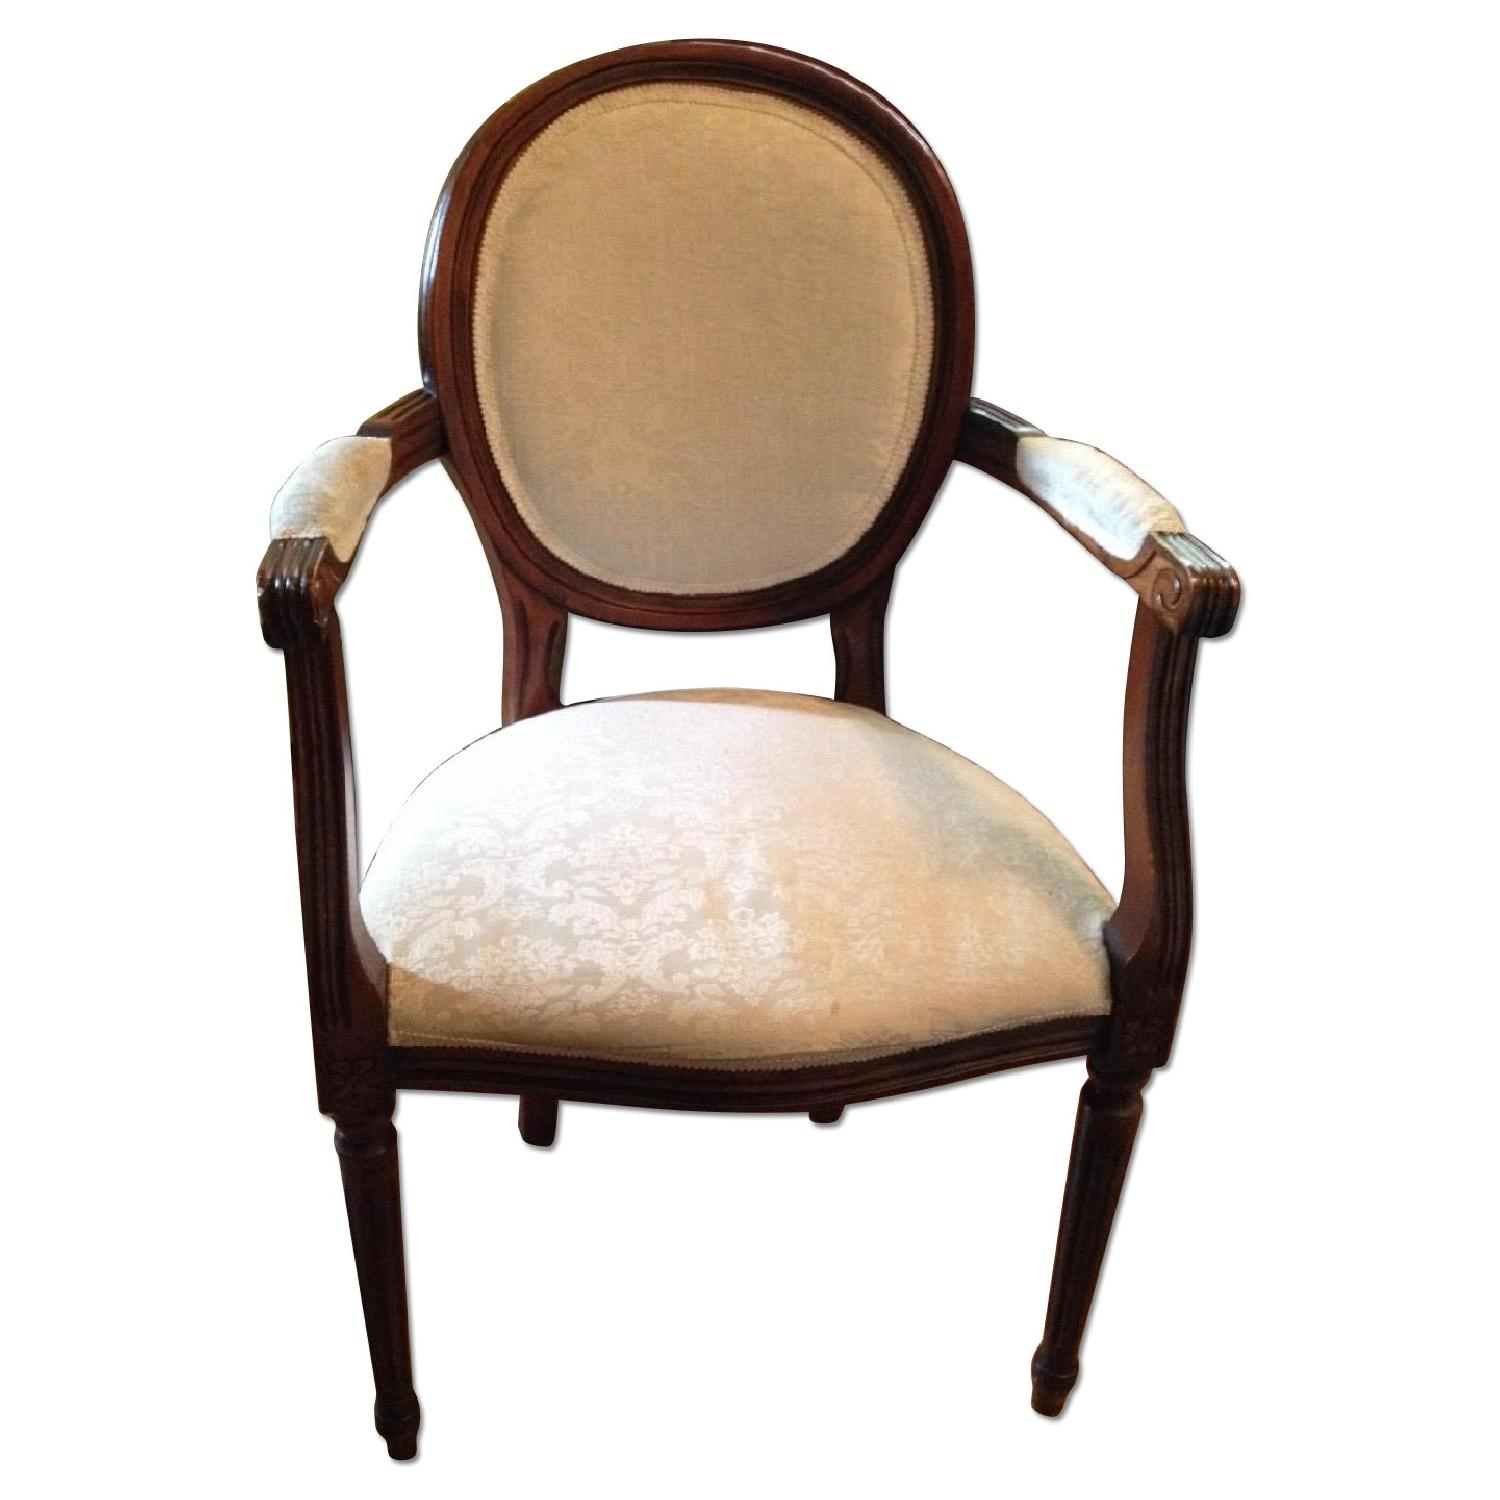 JC Penney Louis XVI Style Arm Chairs - Set of 4